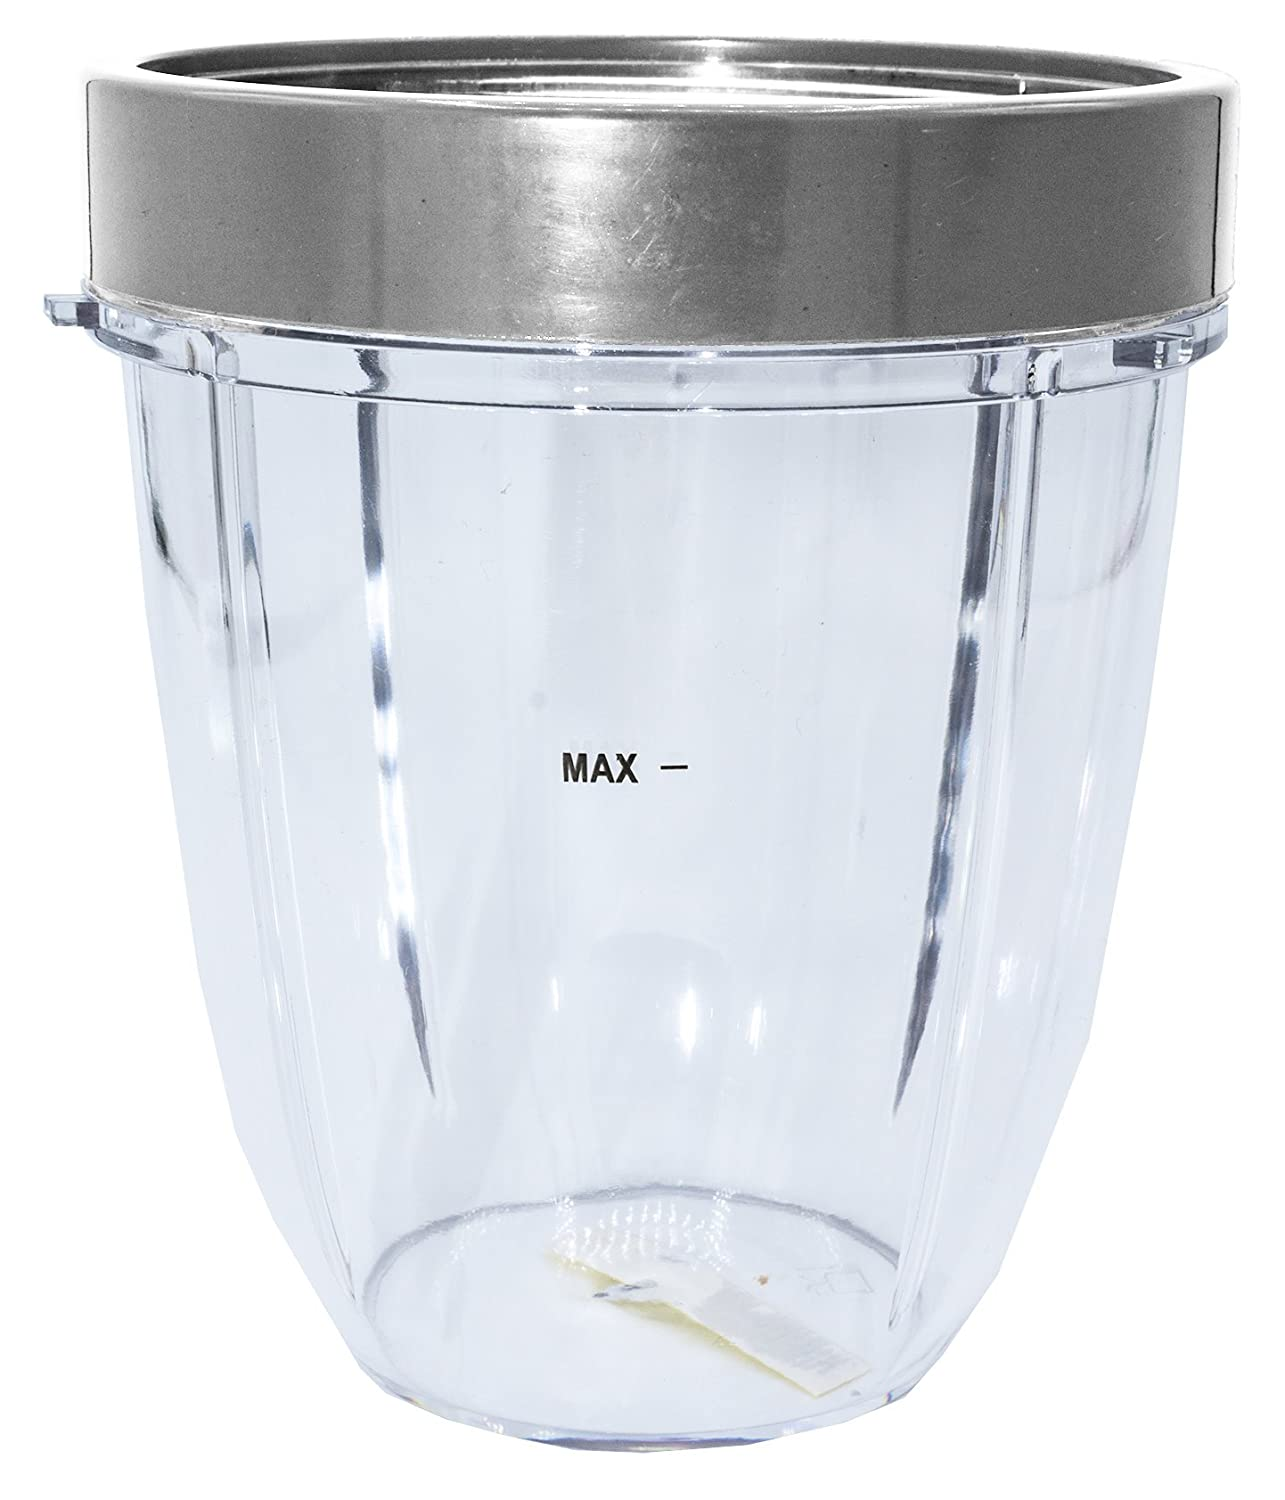 Blendin 18 OZ Short Cup with 1 Lip Ring, Fits NutriBullet 600W and 900W Blenders